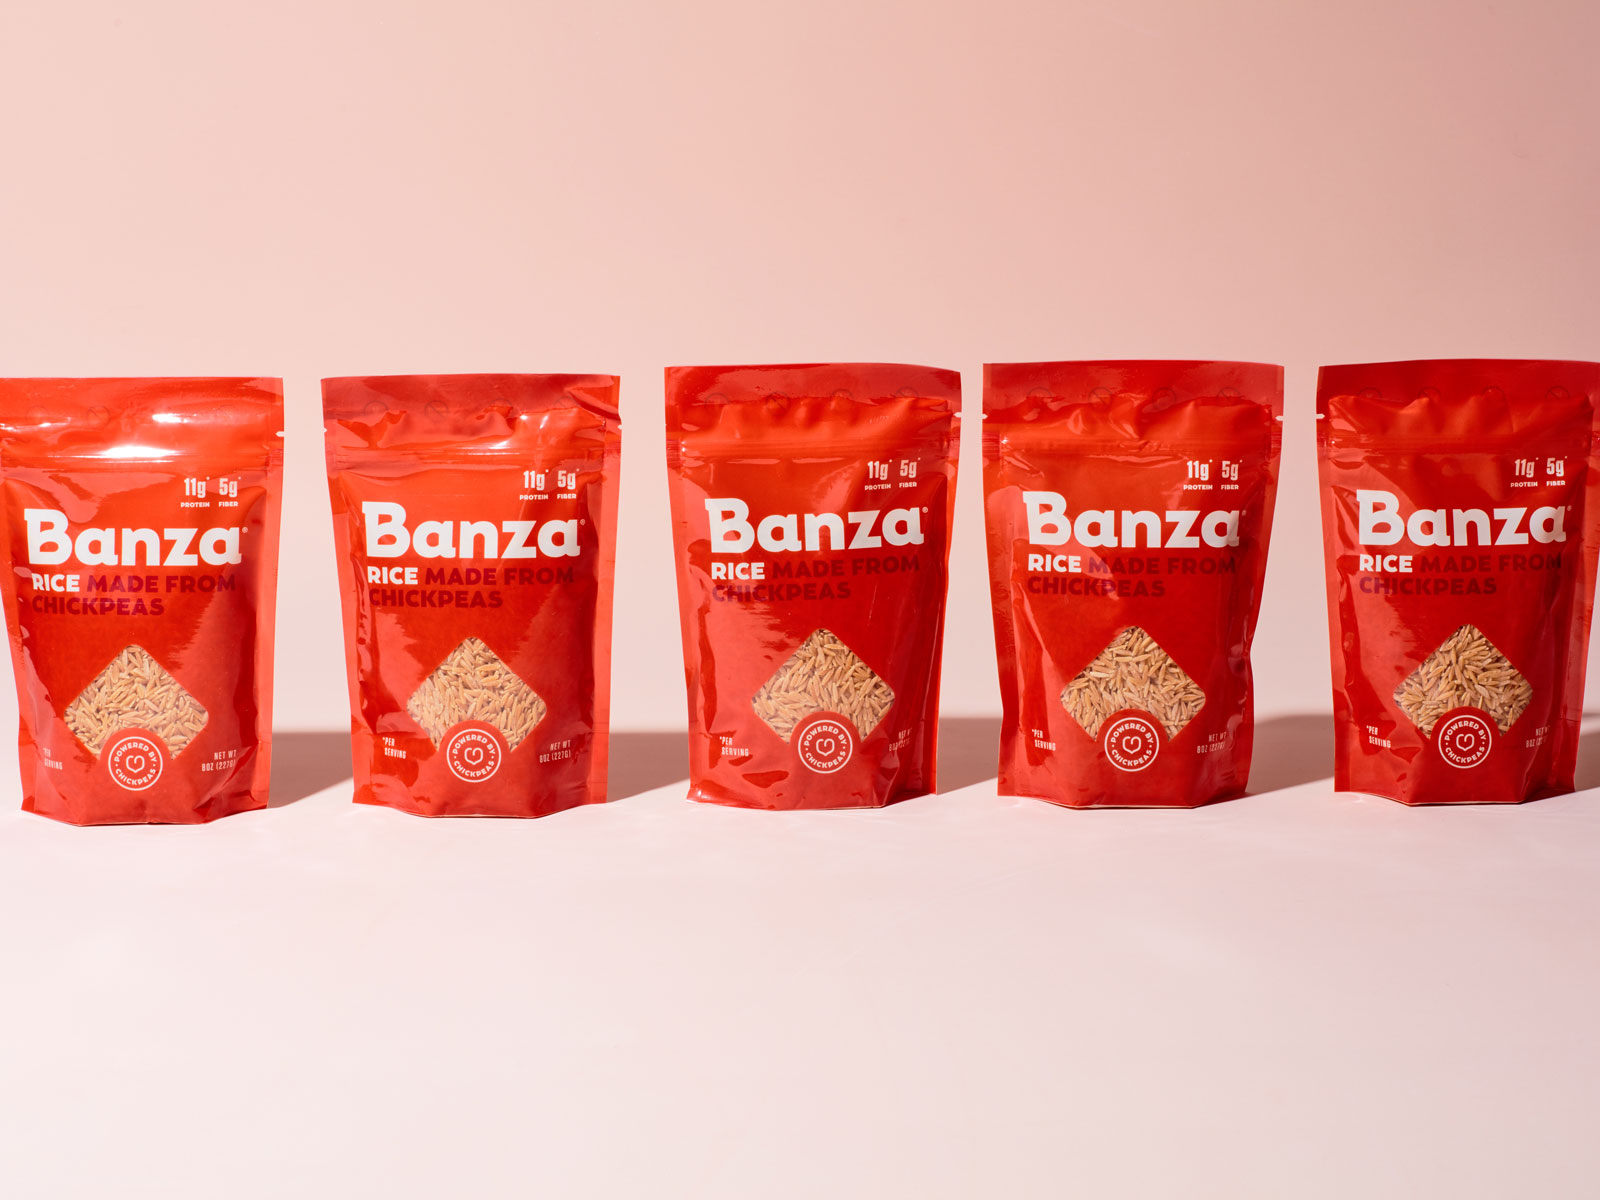 rice-banza-ft-blog0219.jpg